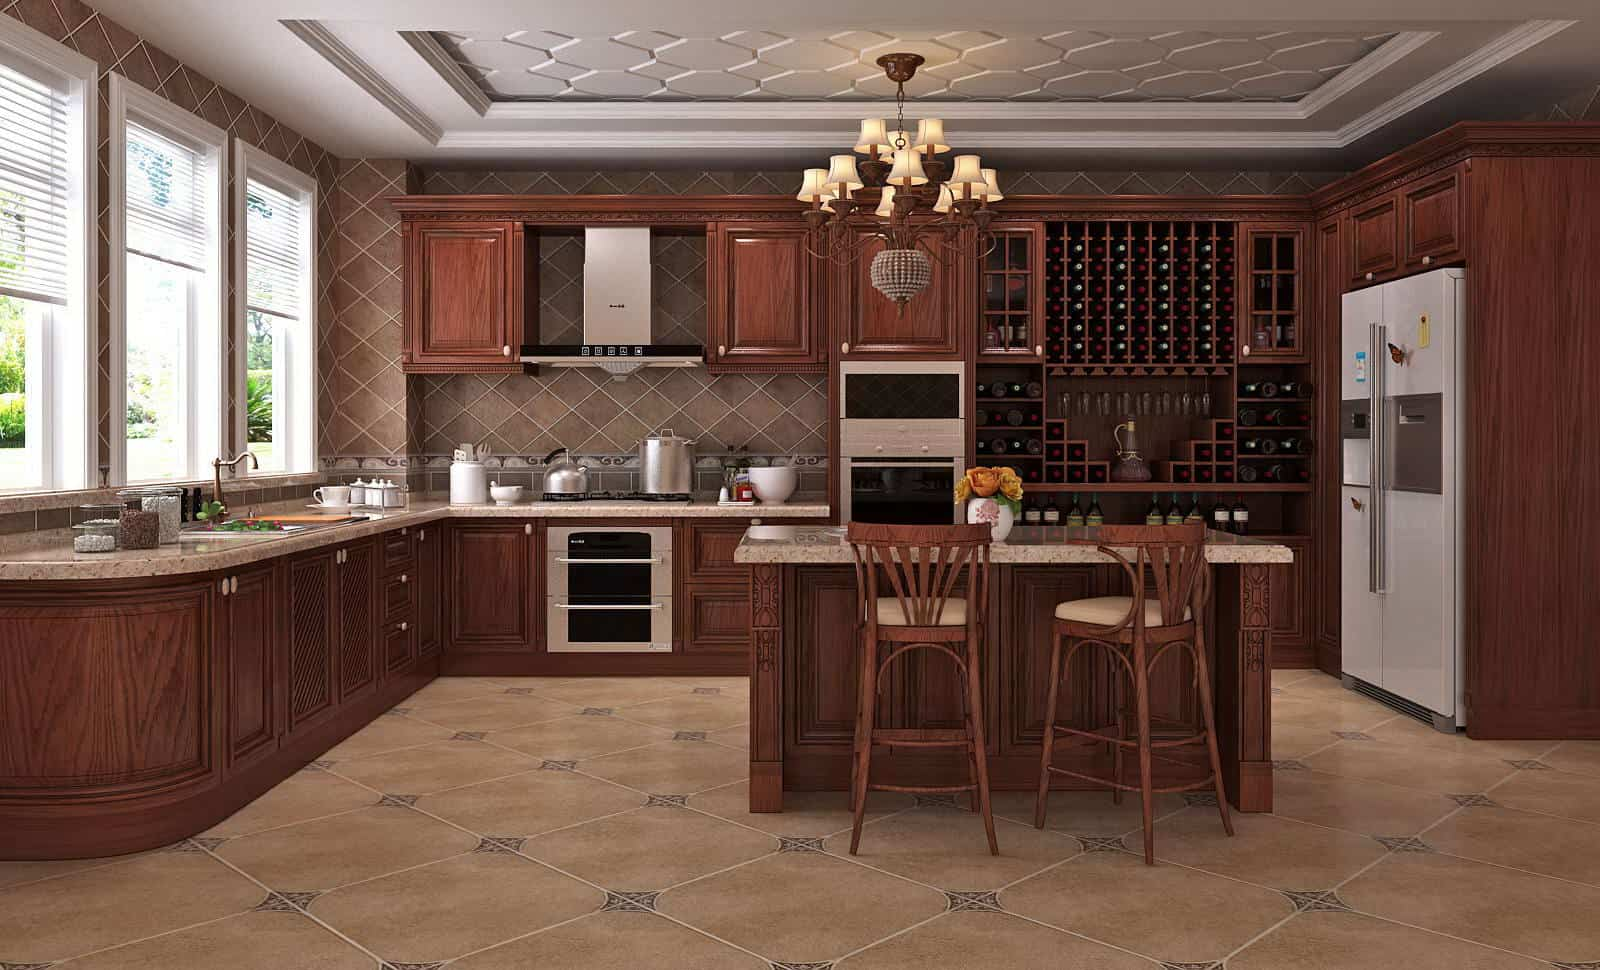 Solid Wood Kitchen Cabinets Wholesale Solid wood kitchen cabiwholesale prices,Premium Quality